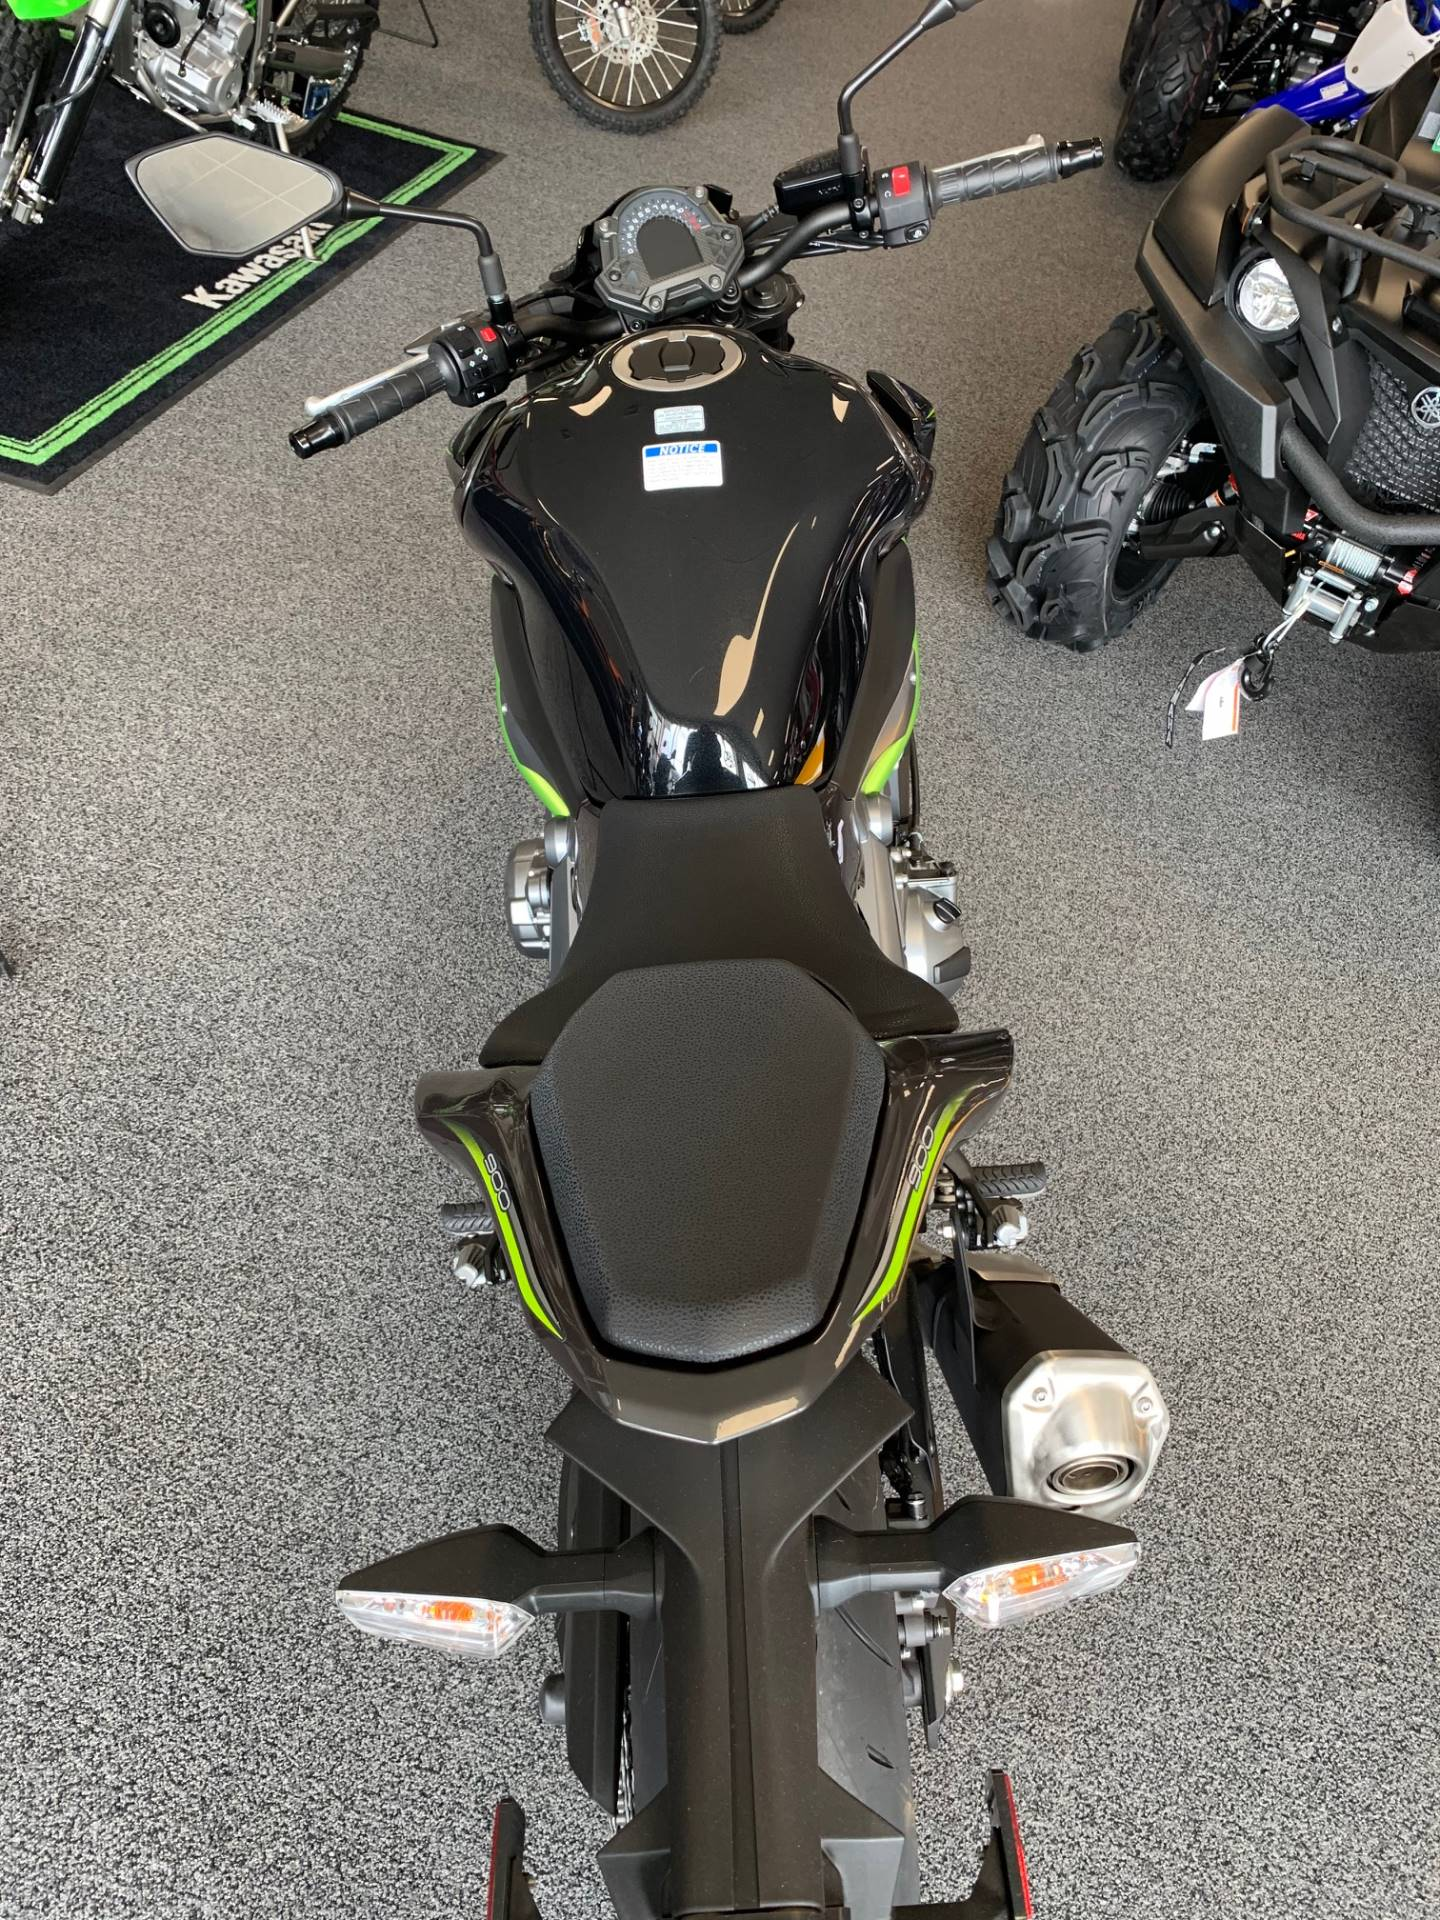 2017 Kawasaki Z900 ABS in Honesdale, Pennsylvania - Photo 6